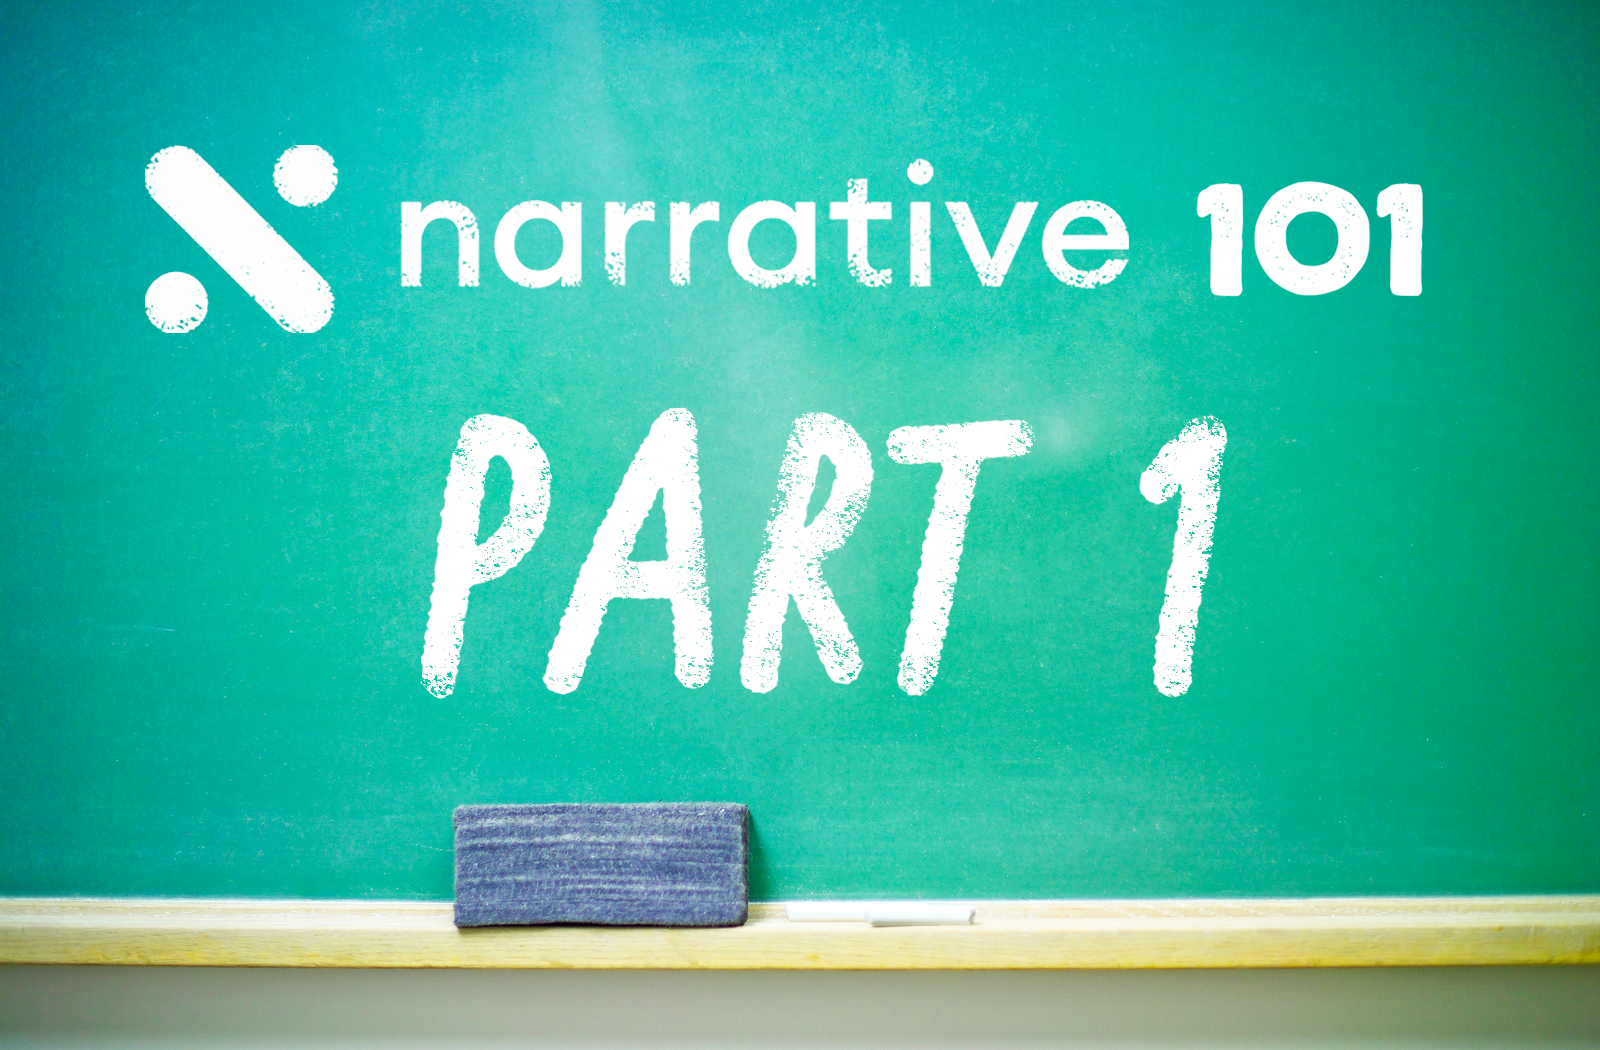 Narrative 101: What Is Narrative? [Video]